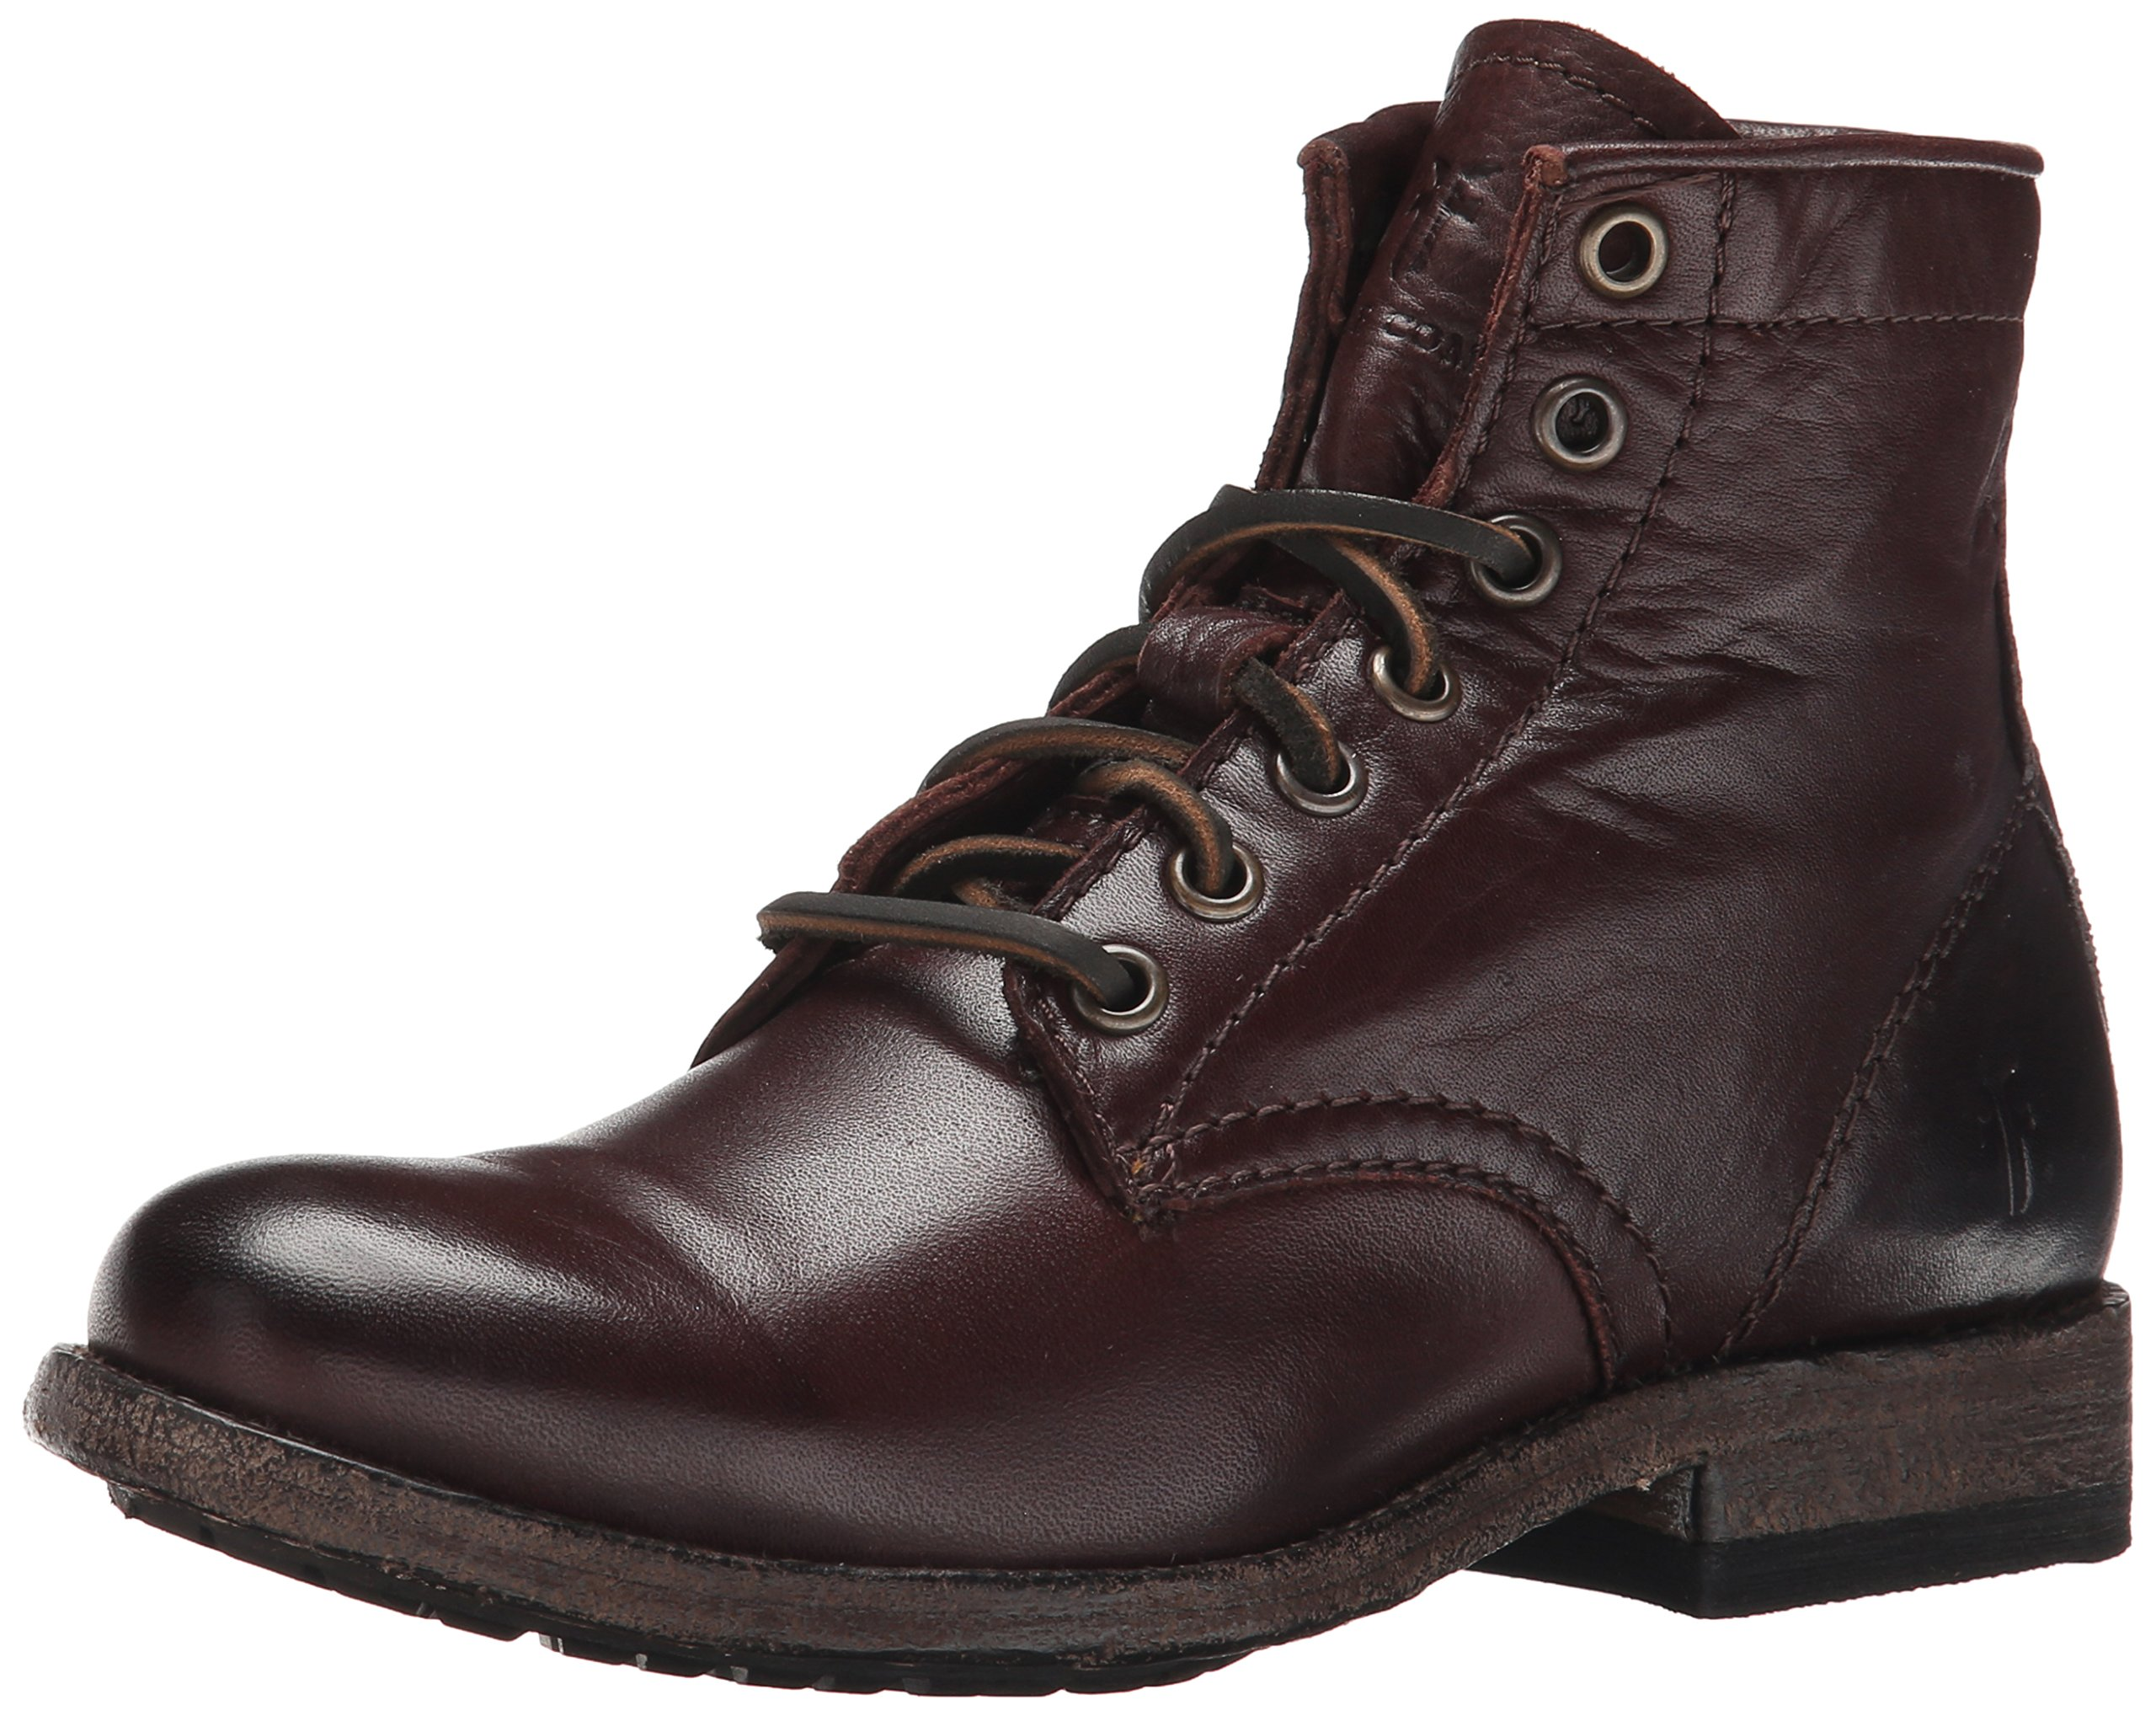 FRYE Women's Tyler Lace Up-SVL Combat Boot, Dark Brown, 8.5 M US